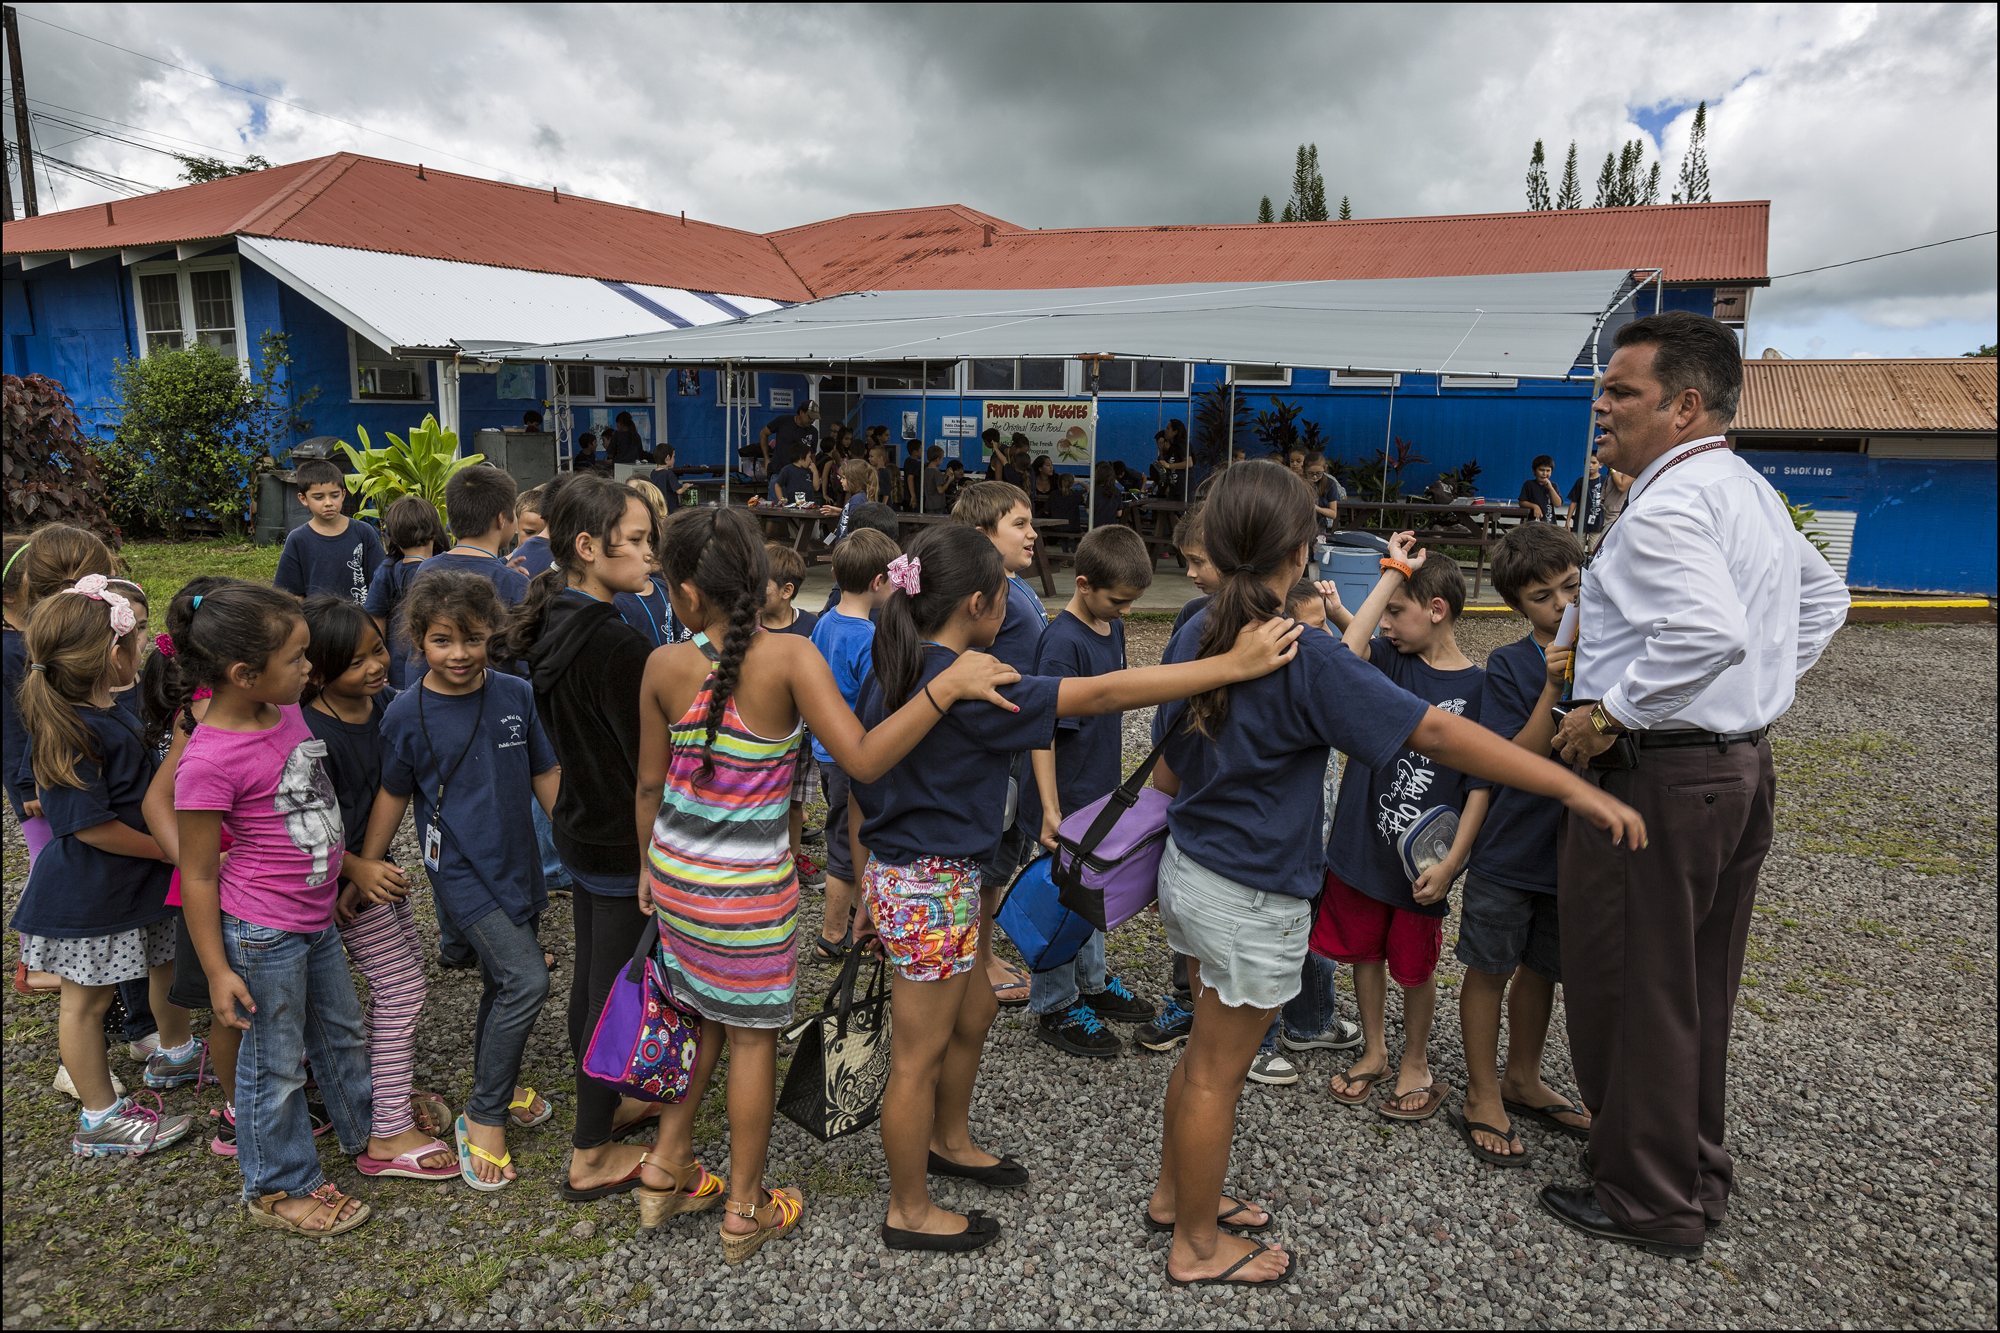 At the Na Wai Ola Public Charter School, located  in Mountain View, HI, Principal Daniel J. Caluya get students organized in two lines.